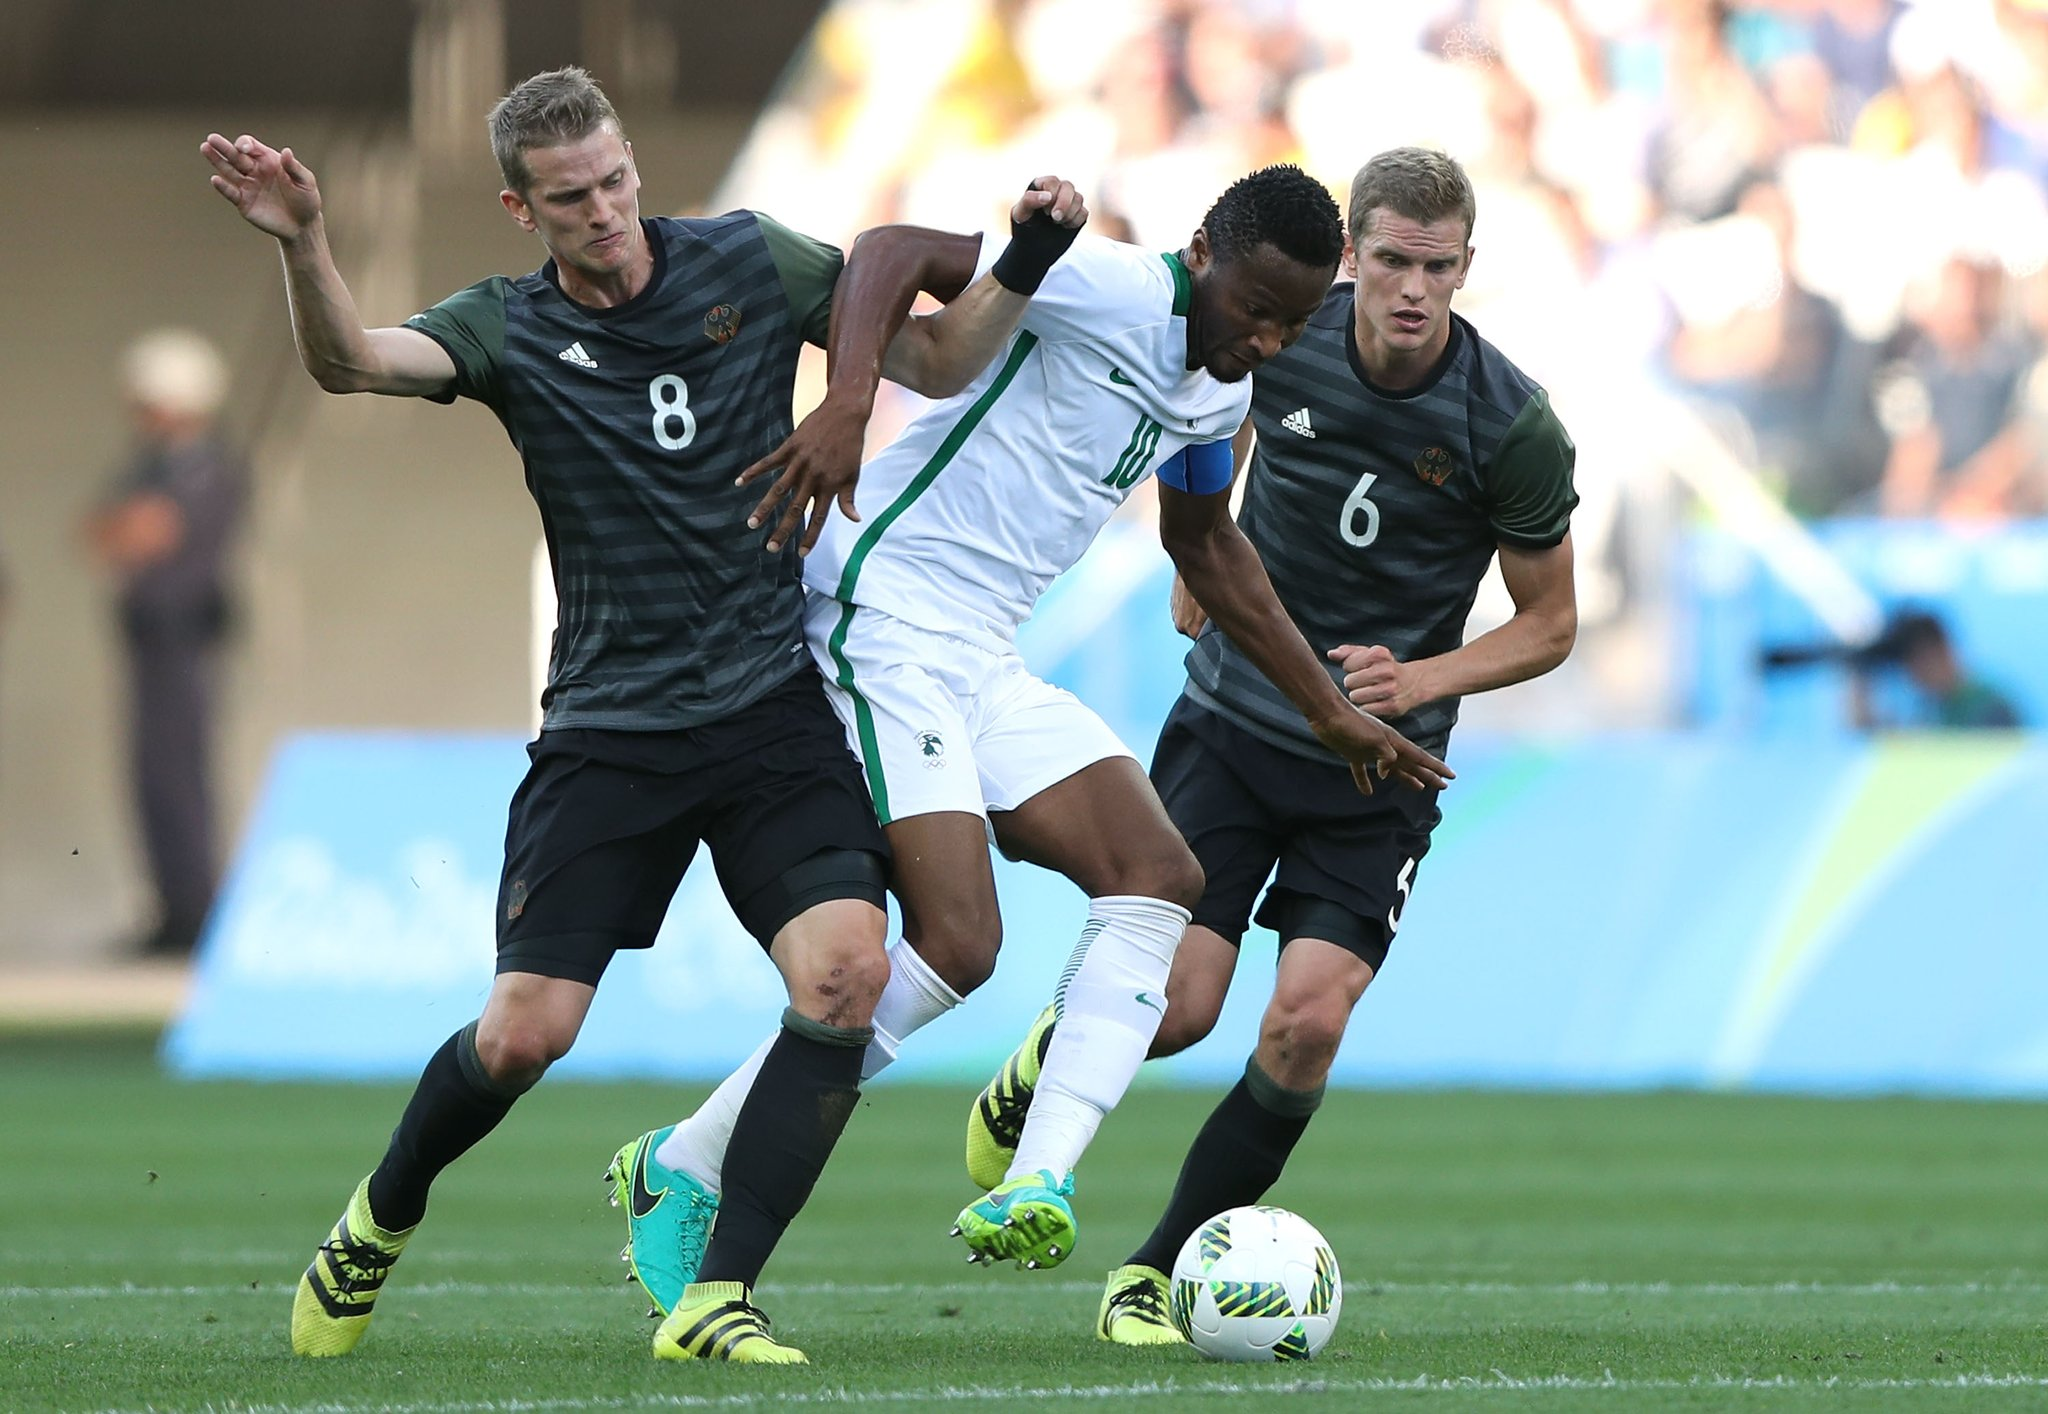 """Mikel Blames """"Luck"""" For Olympic Eagles Loss To Germany, Targets Bronze"""